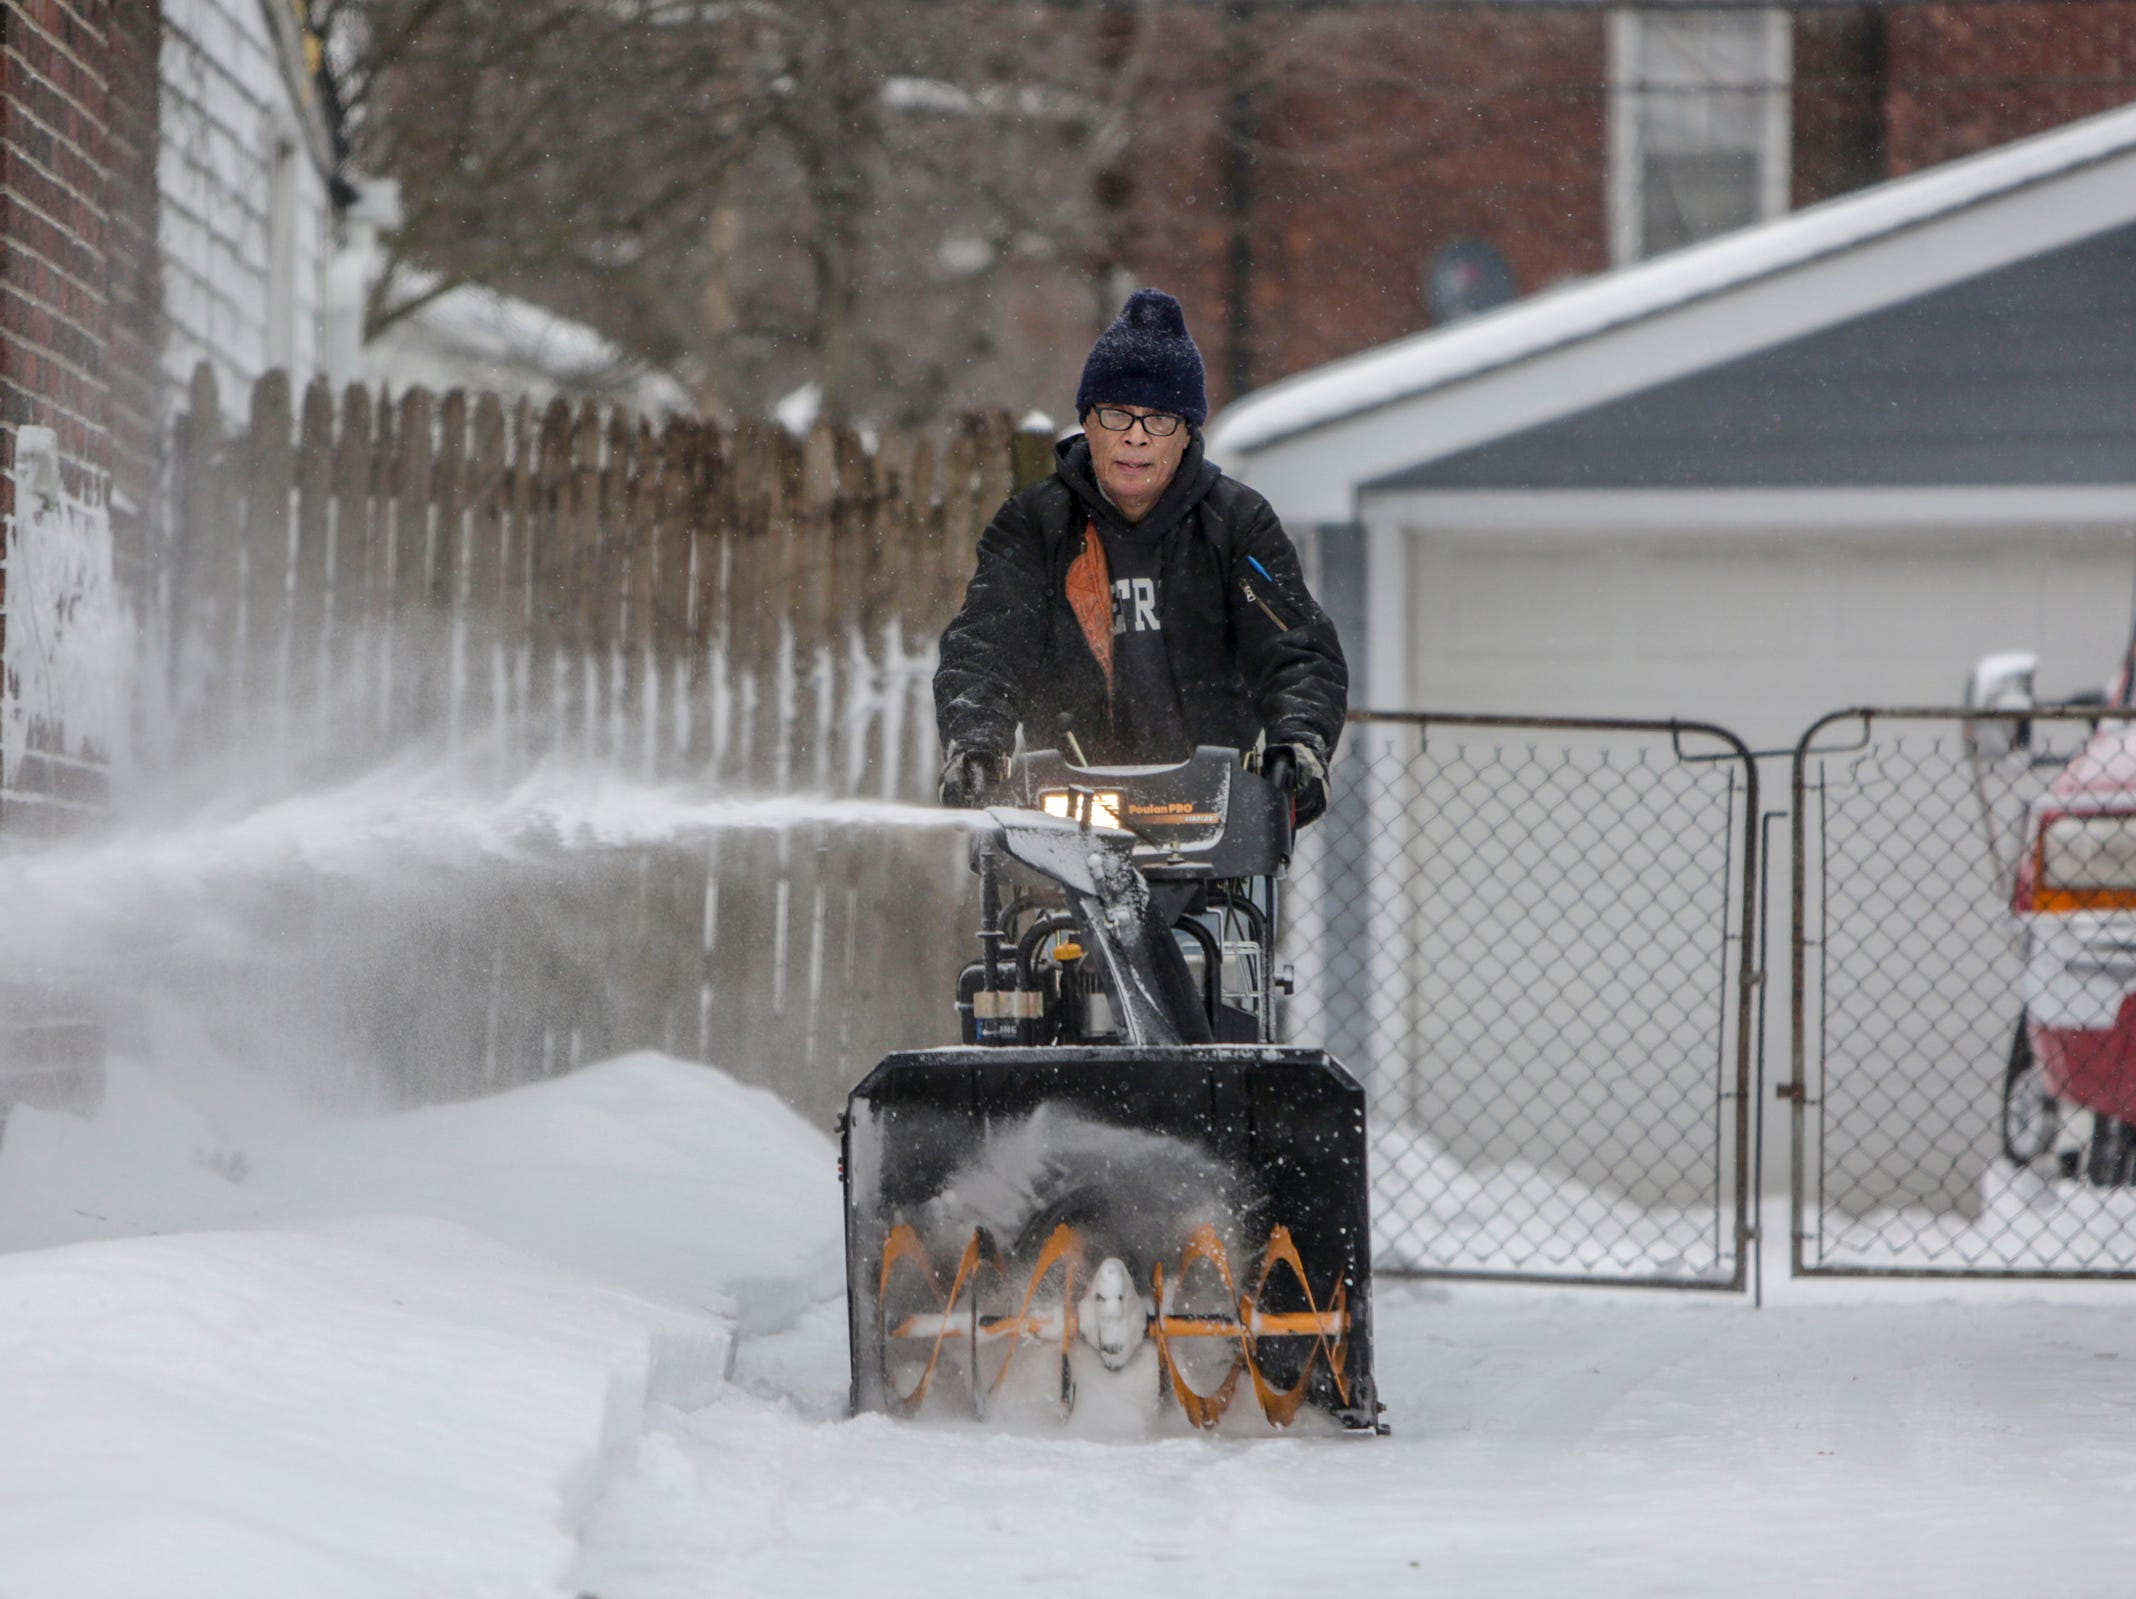 On the eve of the Polar Vortex, Marion Sims, 72, of Detroit clears the snow from the walkways and driveway in front of his home on Tuesday, Jan. 29, 2019. Some areas of Lower Michigan could face wind chills as low as 45 degrees below zero, according to the National Weather Service.